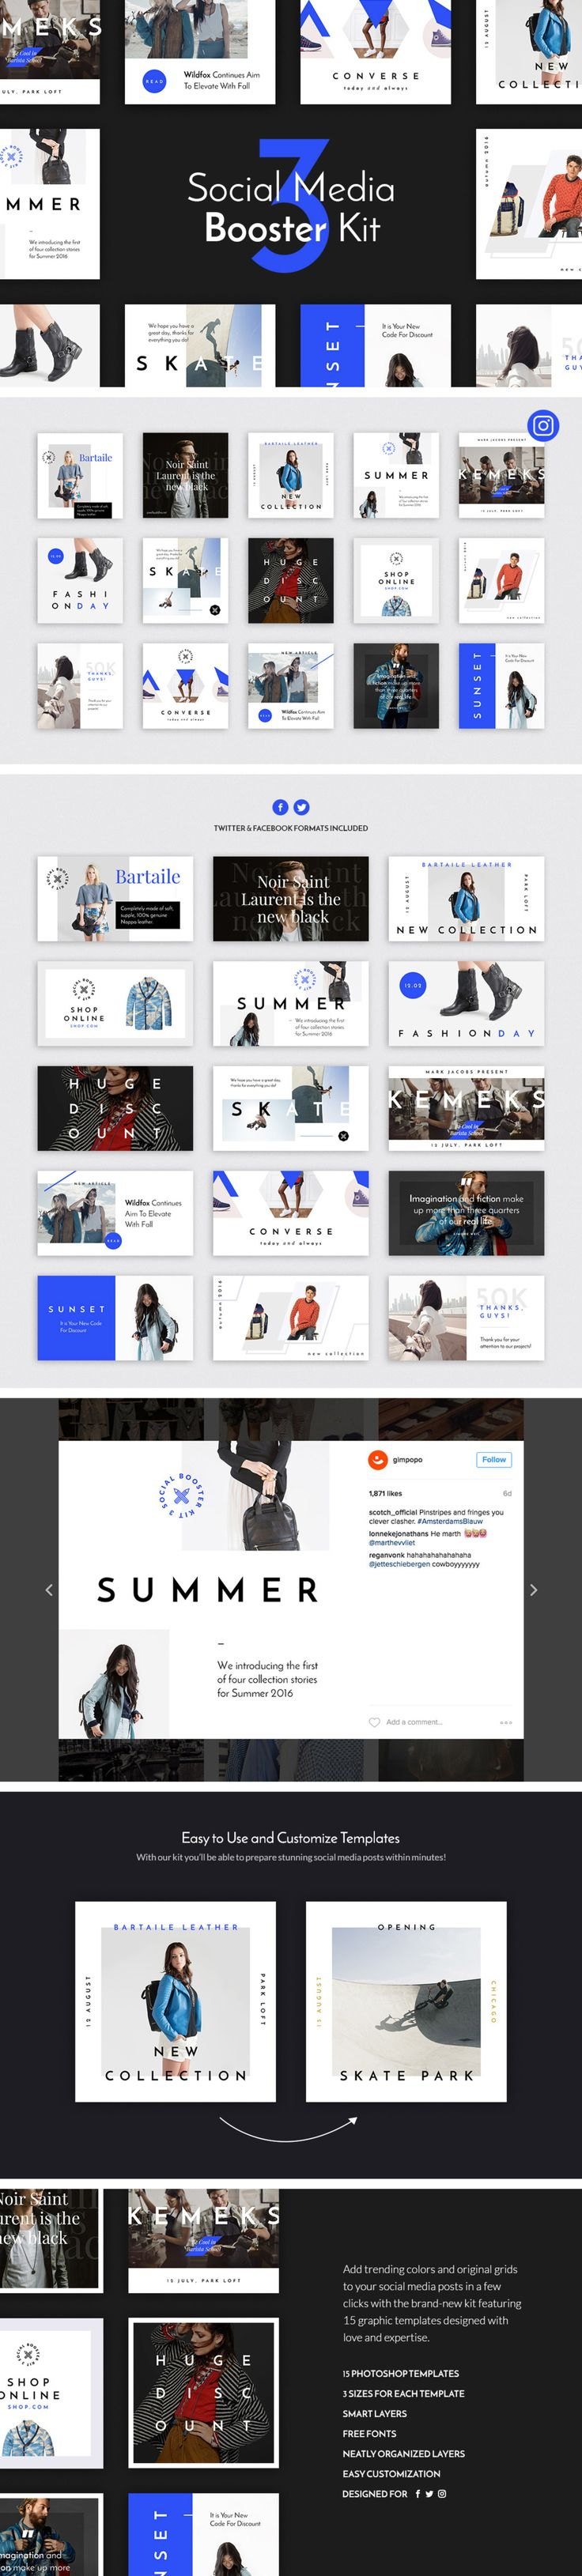 https://social-media-strategy-template.blogspot.com/ #SocialMedia The third volume of the Social Media Booster Kit is here, and its bringing an elegance  class to the marketplace. The winning combination of the deep blue color, rich typography, and original grid are intended to help you to stand out from the crowd with simple yet incredibly stylish social media posts. The package includes 15 templates designed natively for Instagram, Twitter, and Facebook. Each of them is easy to edit ...